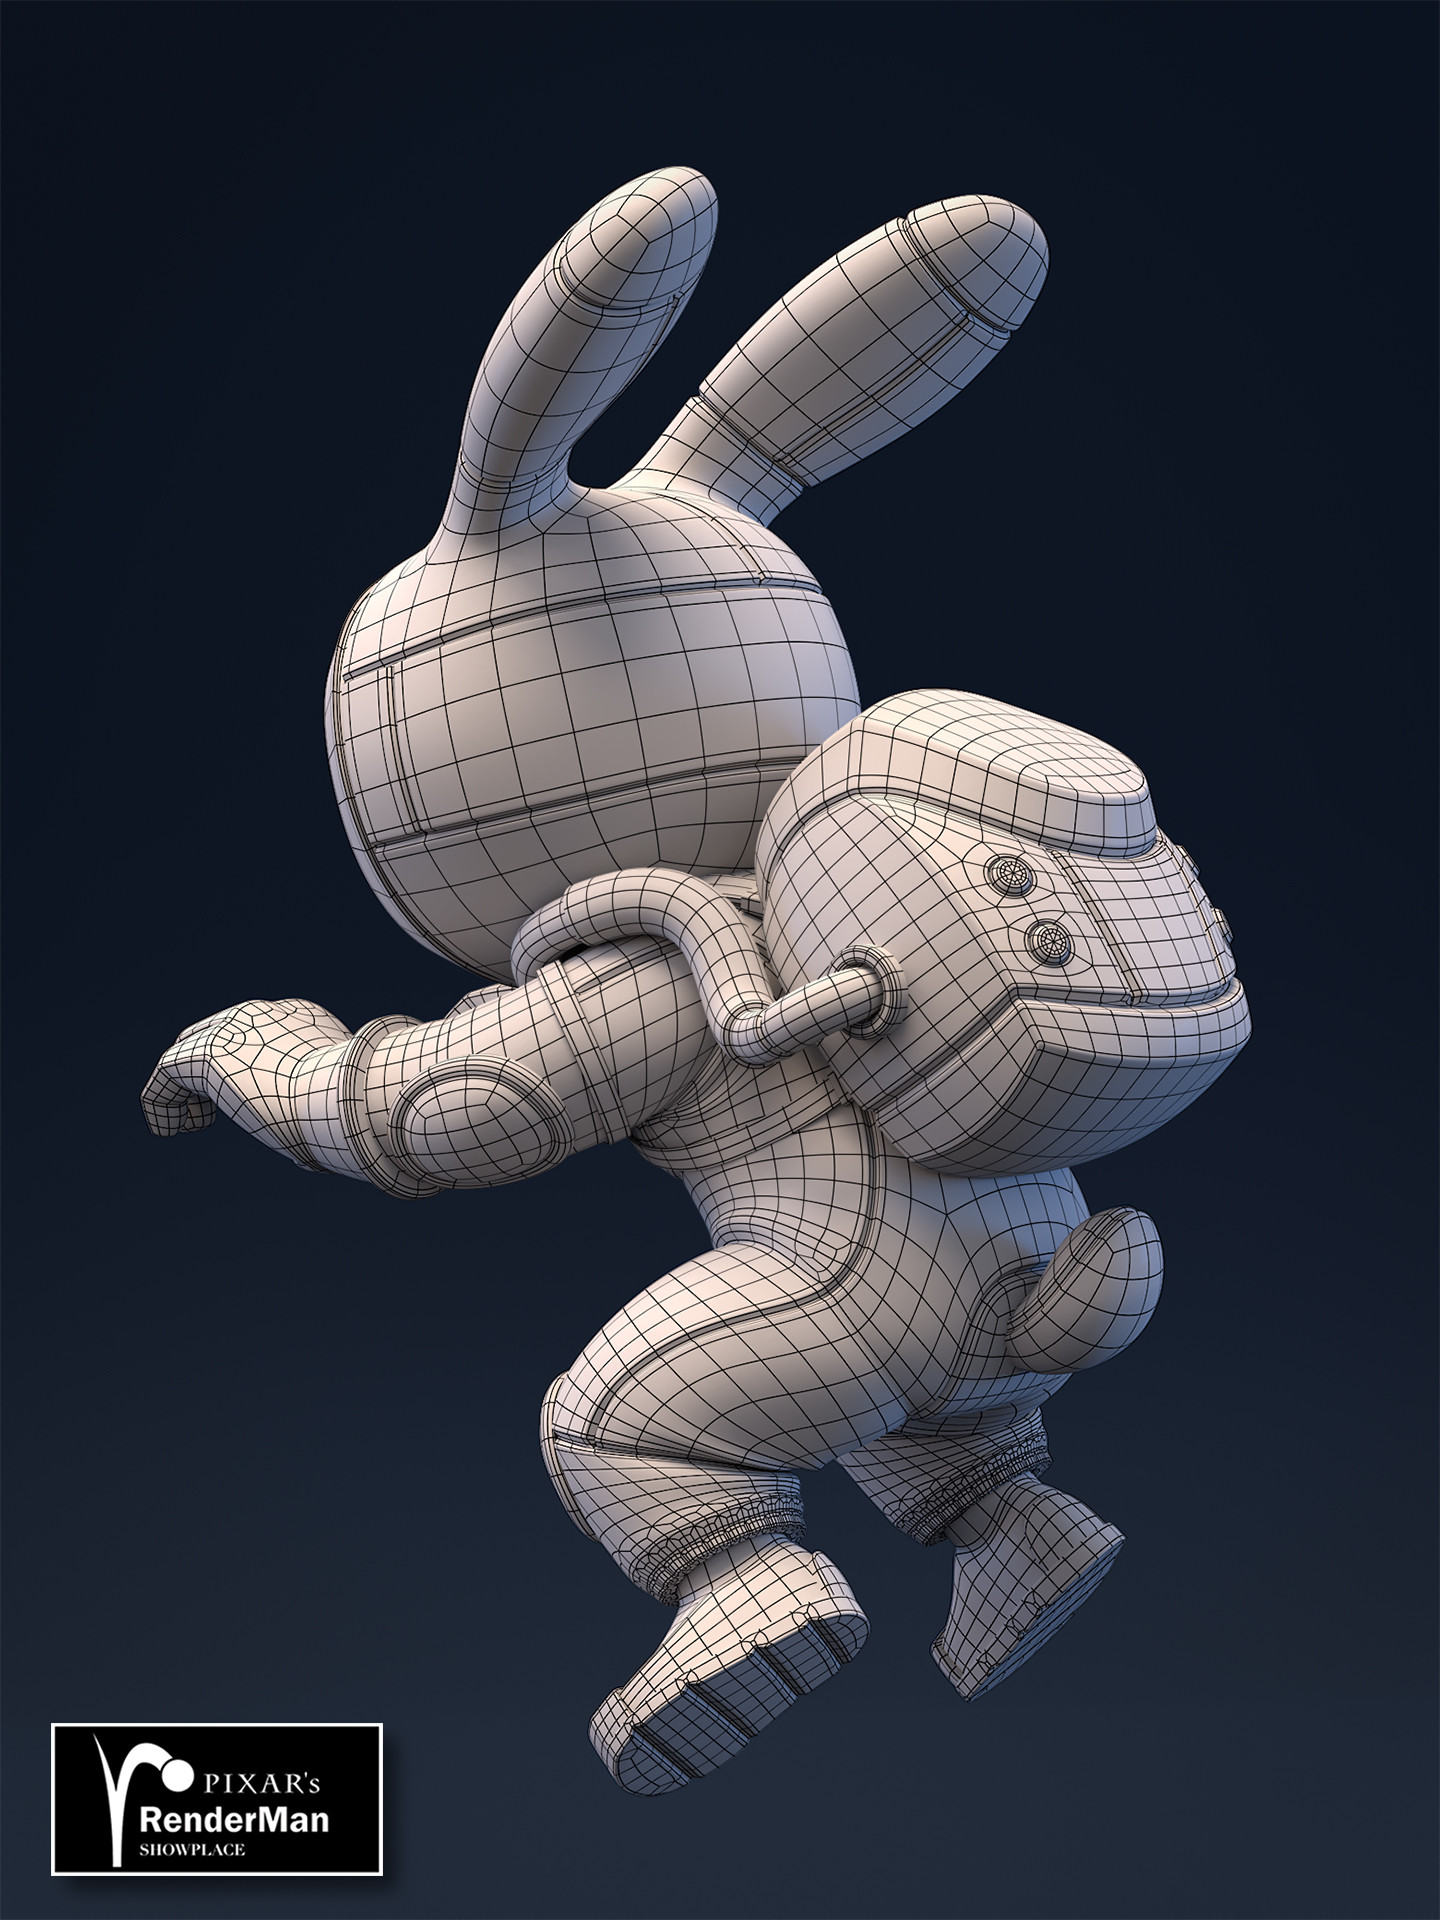 Brice laville saint martin rocket rabbit retopo back